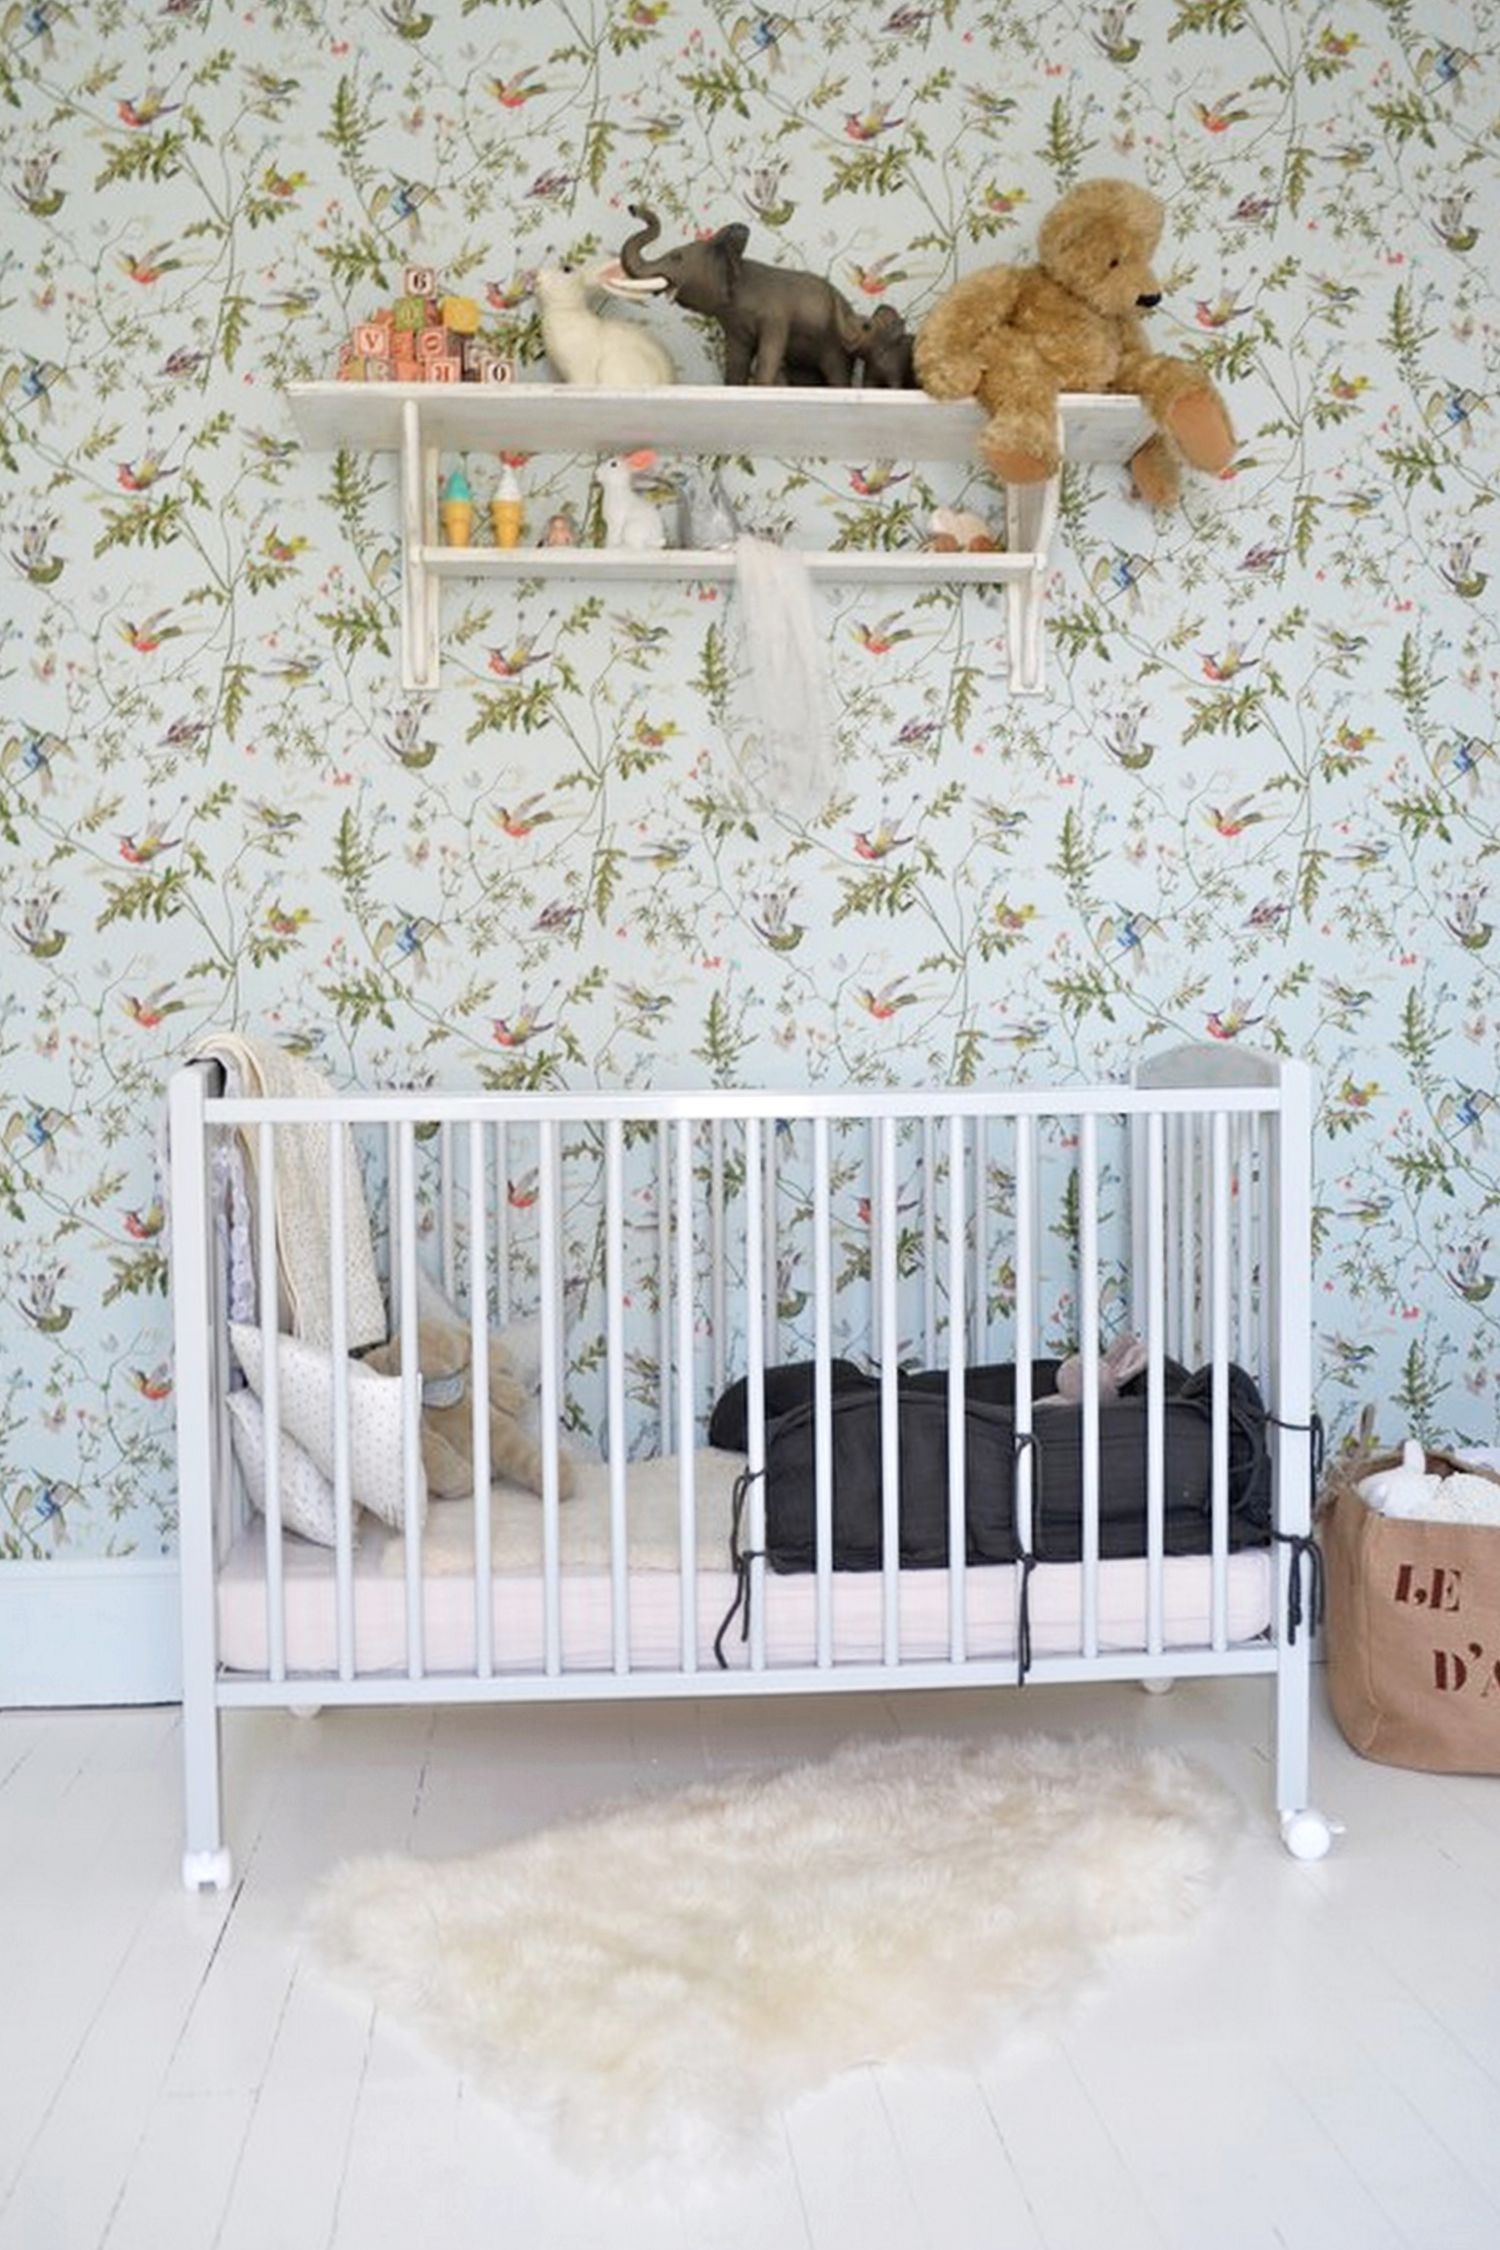 chambre enfant anne claire ruel 5 h ll blogzine. Black Bedroom Furniture Sets. Home Design Ideas